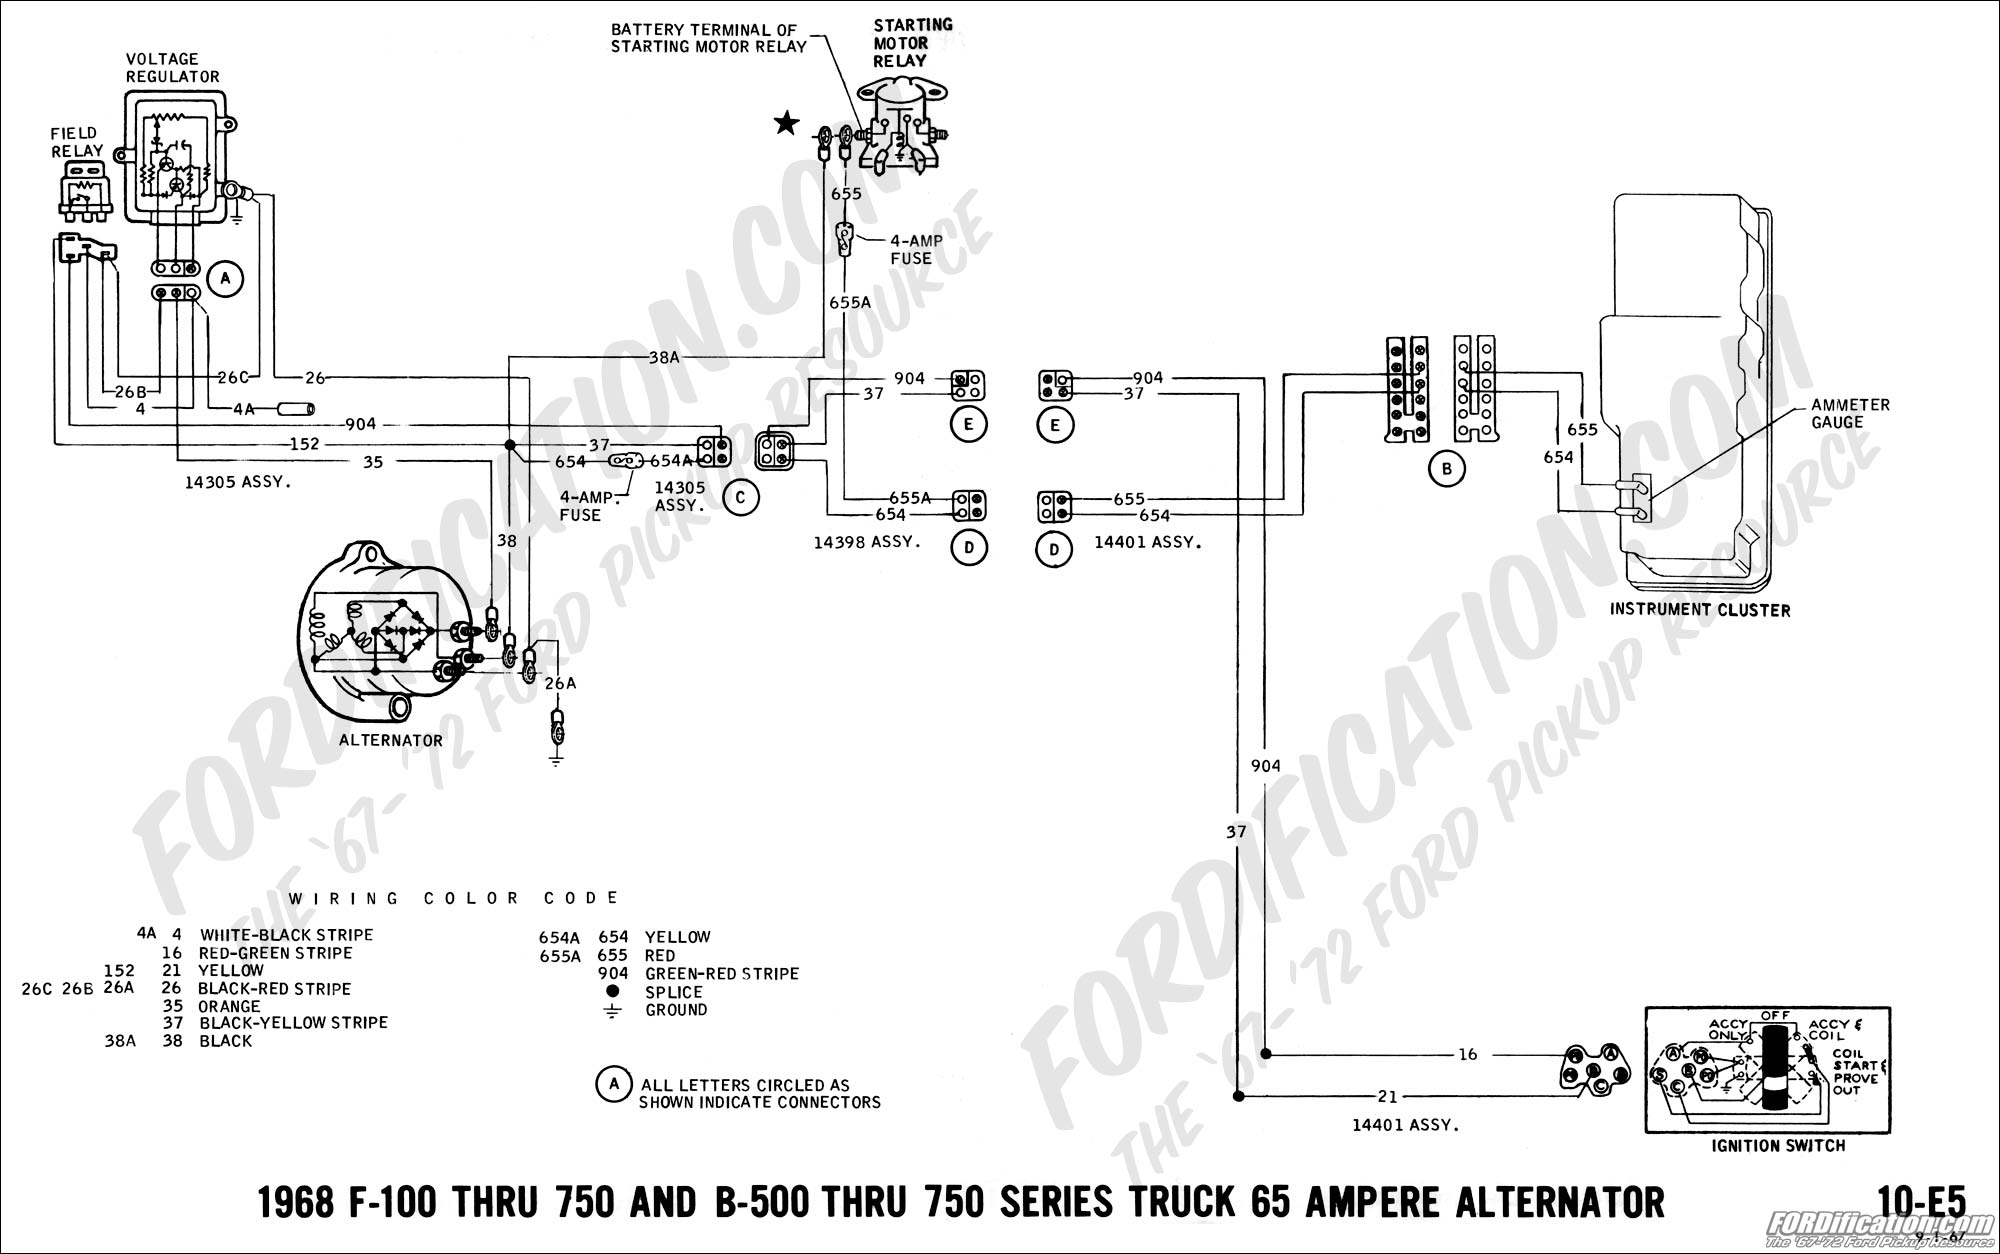 3 Wire Gm Alternator Wiring Diagram Ford Worksheet And Cs130 To A With The 100 Amp Alt Motorcraft Schematics Rh Sylviaexpress Com Delco Internal Regulator